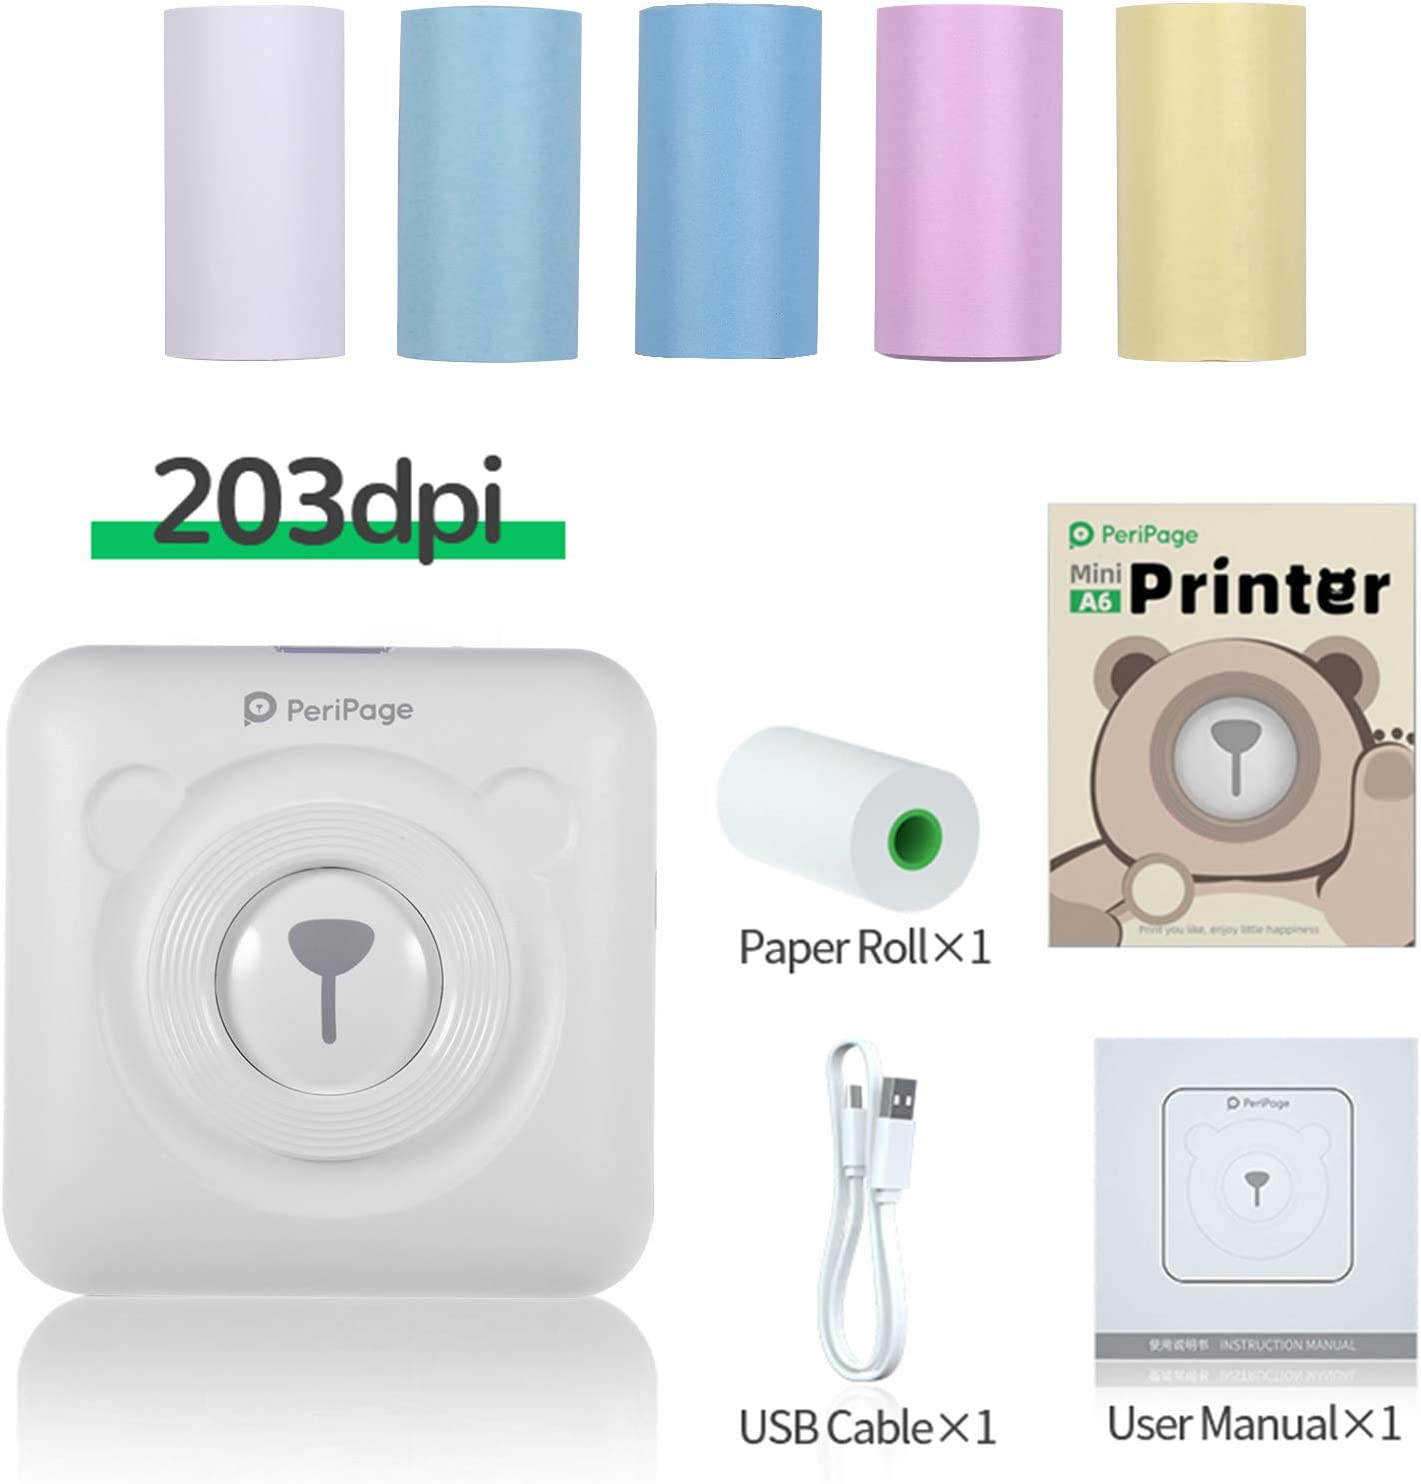 Aibecy PeriPage Mini Thermal Printer with USB Cable Pocket Wireless BT Picture Photo Label Memo Receipt Paper Printer Support for Android iOS Smartphone Windows 6 Rolls Thermal Paper